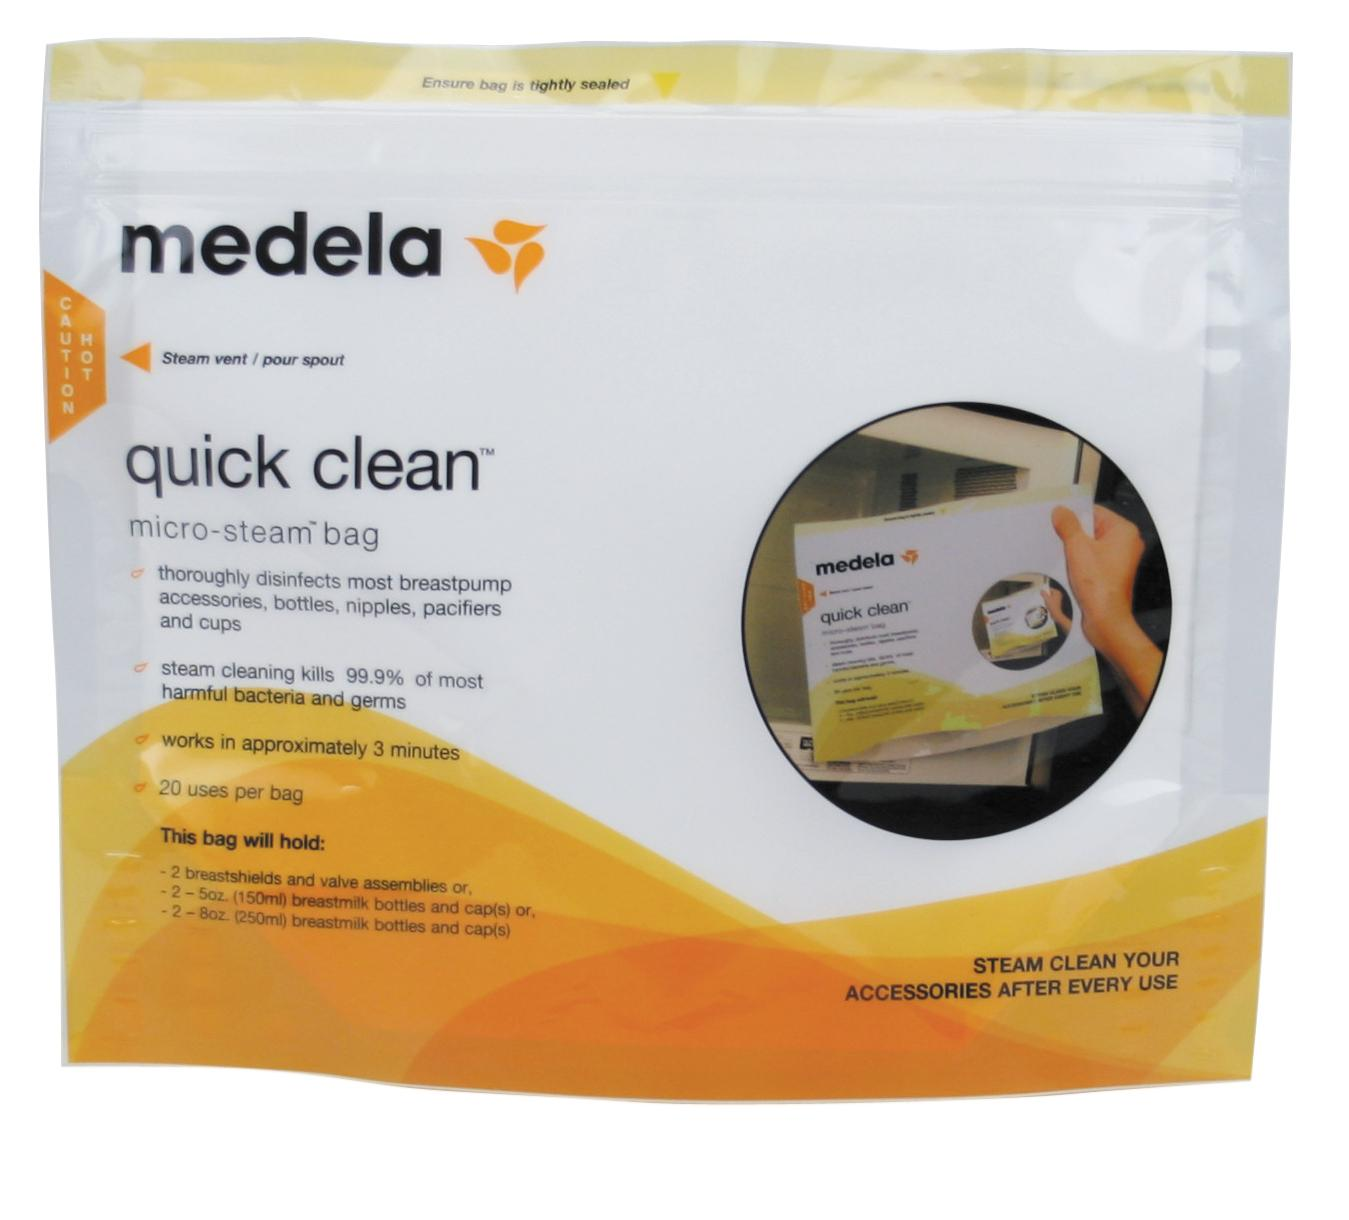 697361efa161 Amazon.com   Medela Quick Clean Micro-Steam Bags   Breast Pump ...